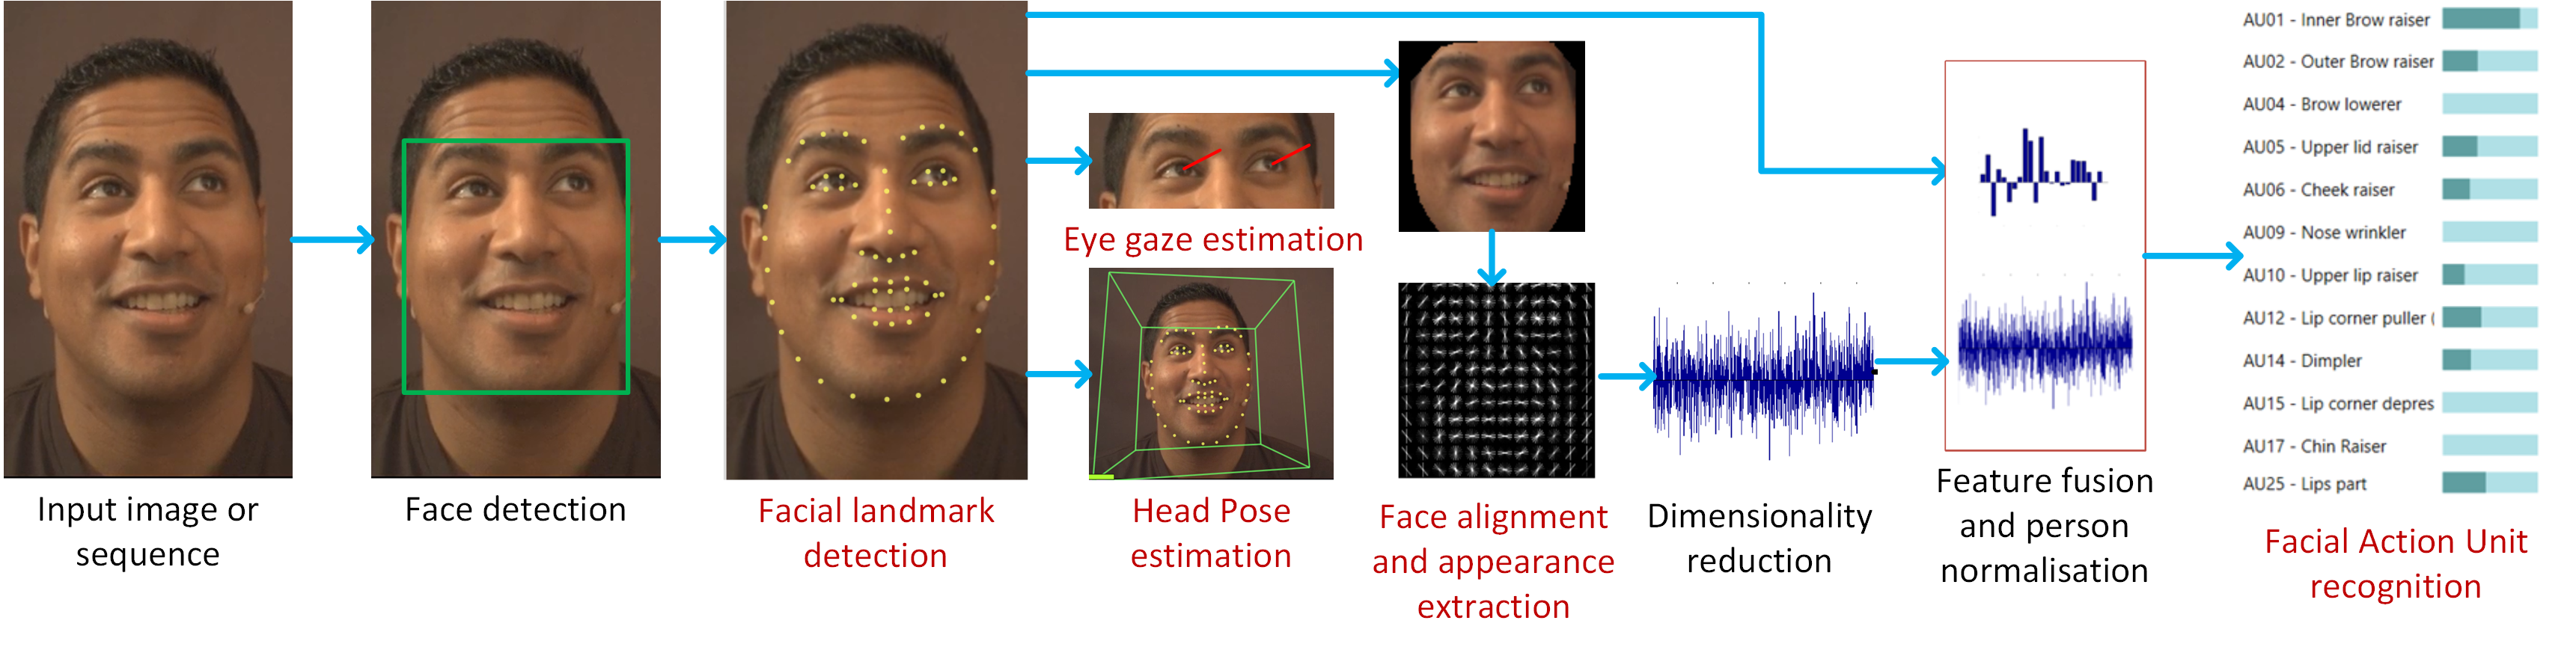 Figure 2: OpenFace facial behavior analysis pipeline, including: facial landmark detection, head pose and eye gaze estimation, facial action unit recognition.